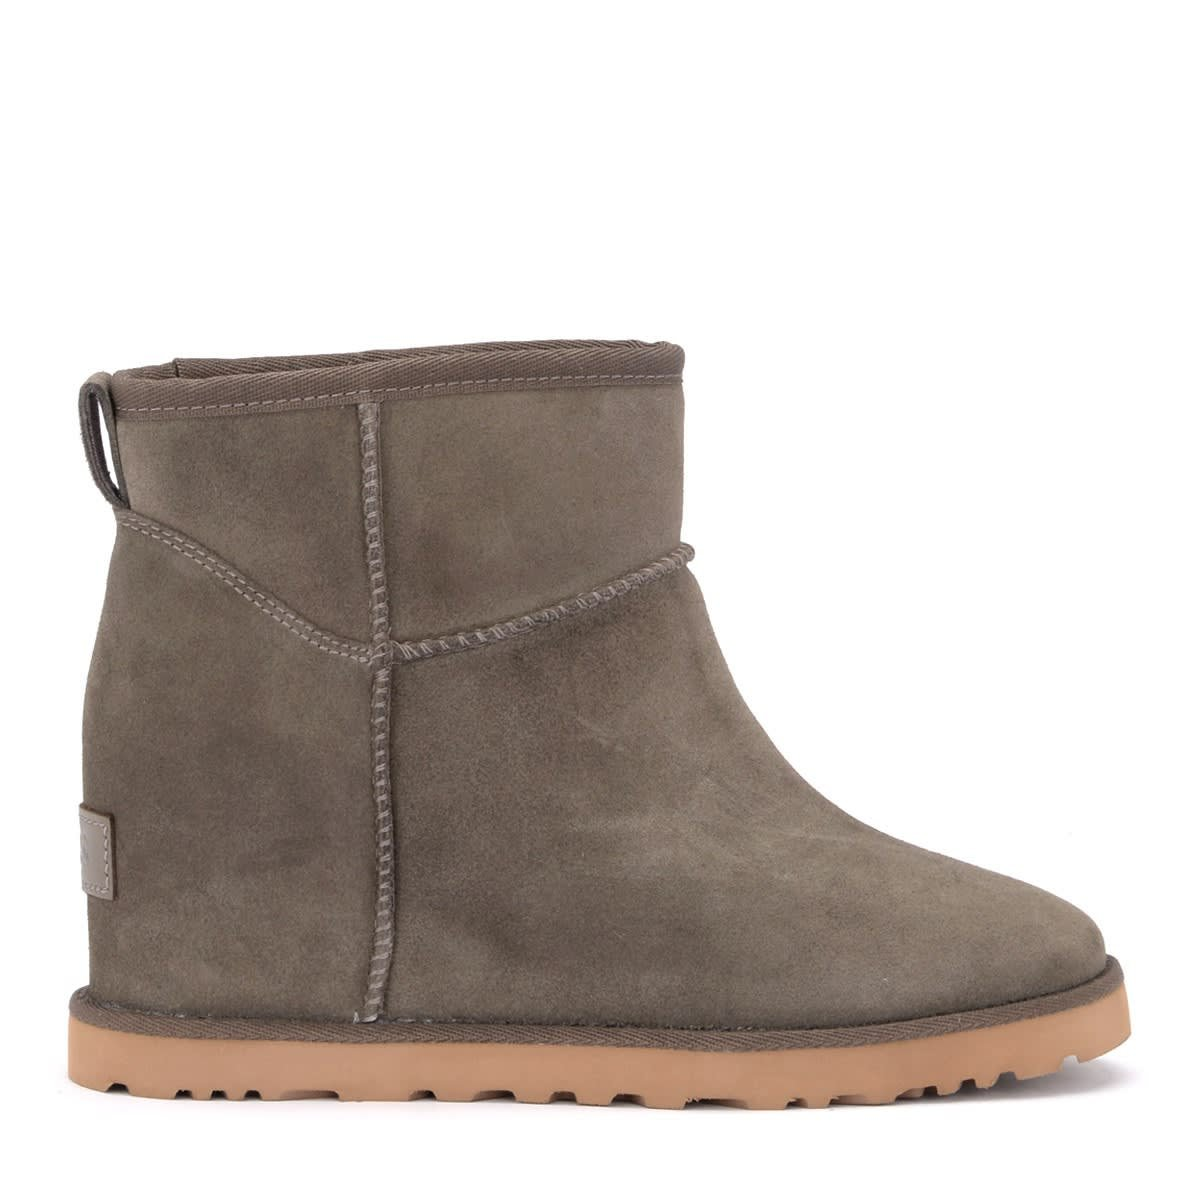 Ugg Classic Femme Mini Ankle Boot In Gray In Sheepskin And Suede